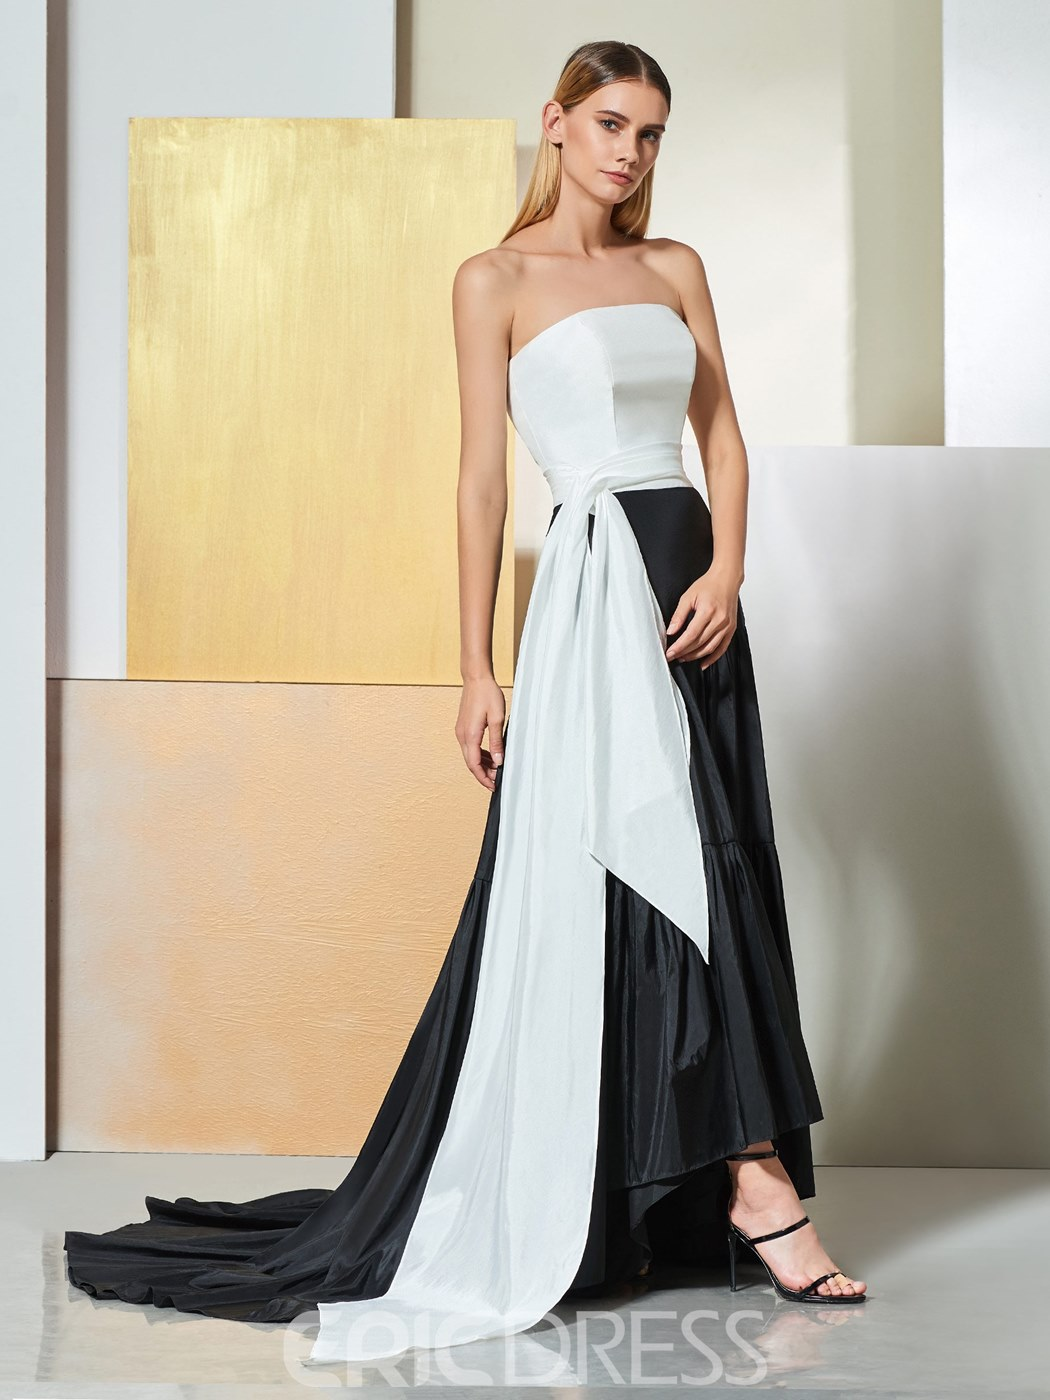 Ericdress A Line Strapless Black And White Evening Dress